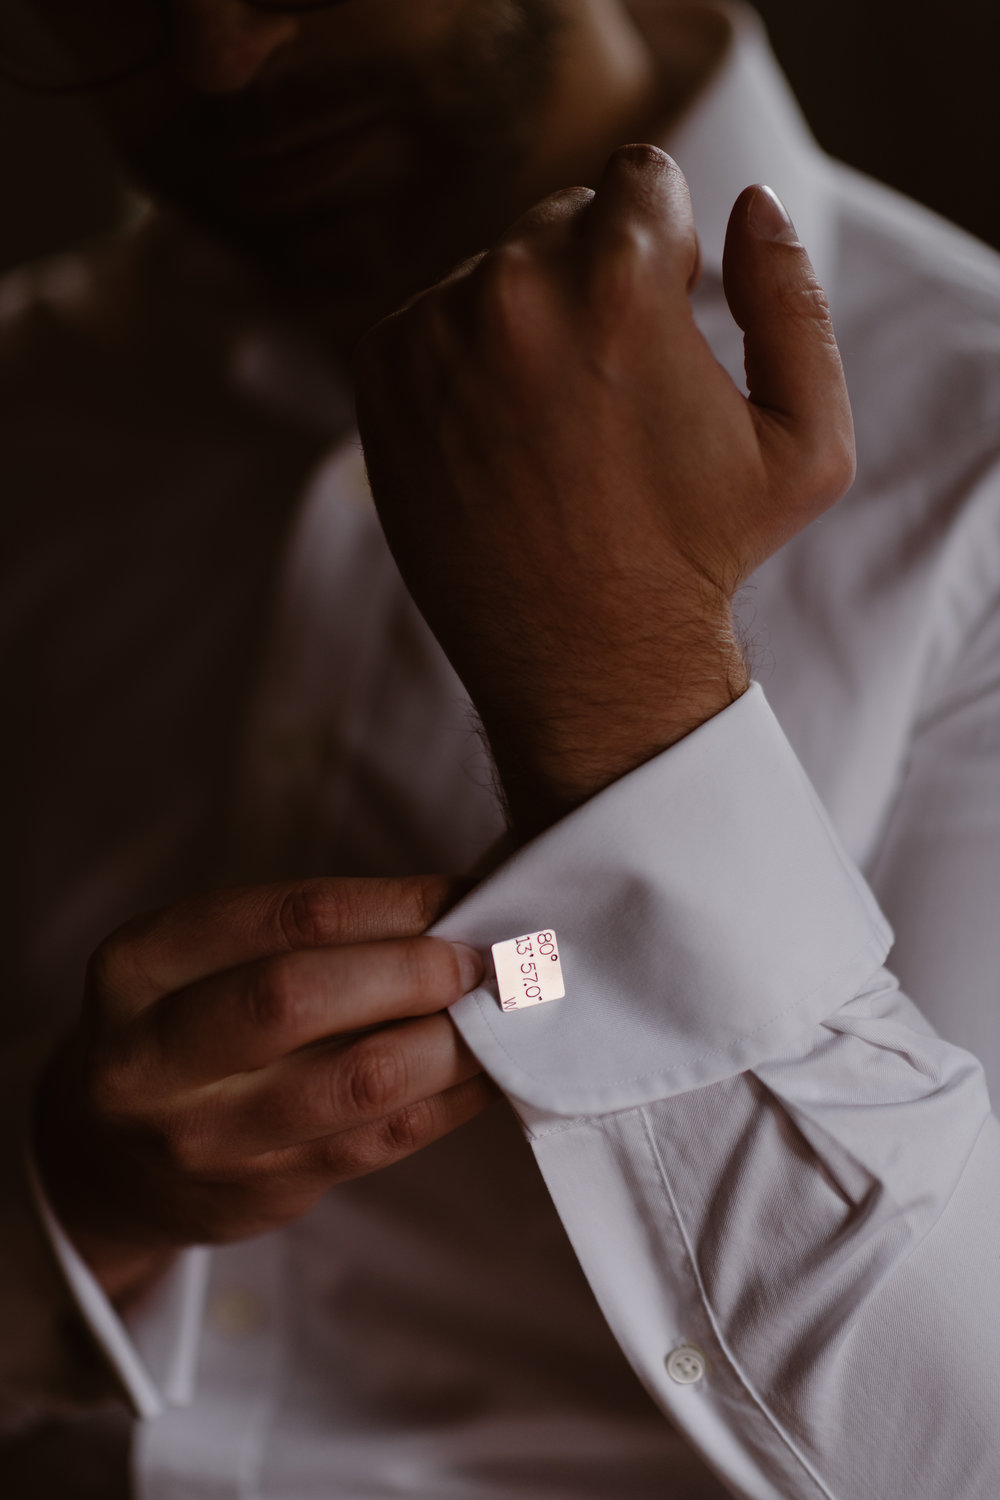 The groom, Logan, adjust the long, white sleeve of his shirt, showing off his cuff links that are engraved with a specific longitude and latitude. This unique eloping idea was a meaningful part of this couple's jeep Colorado elopement.